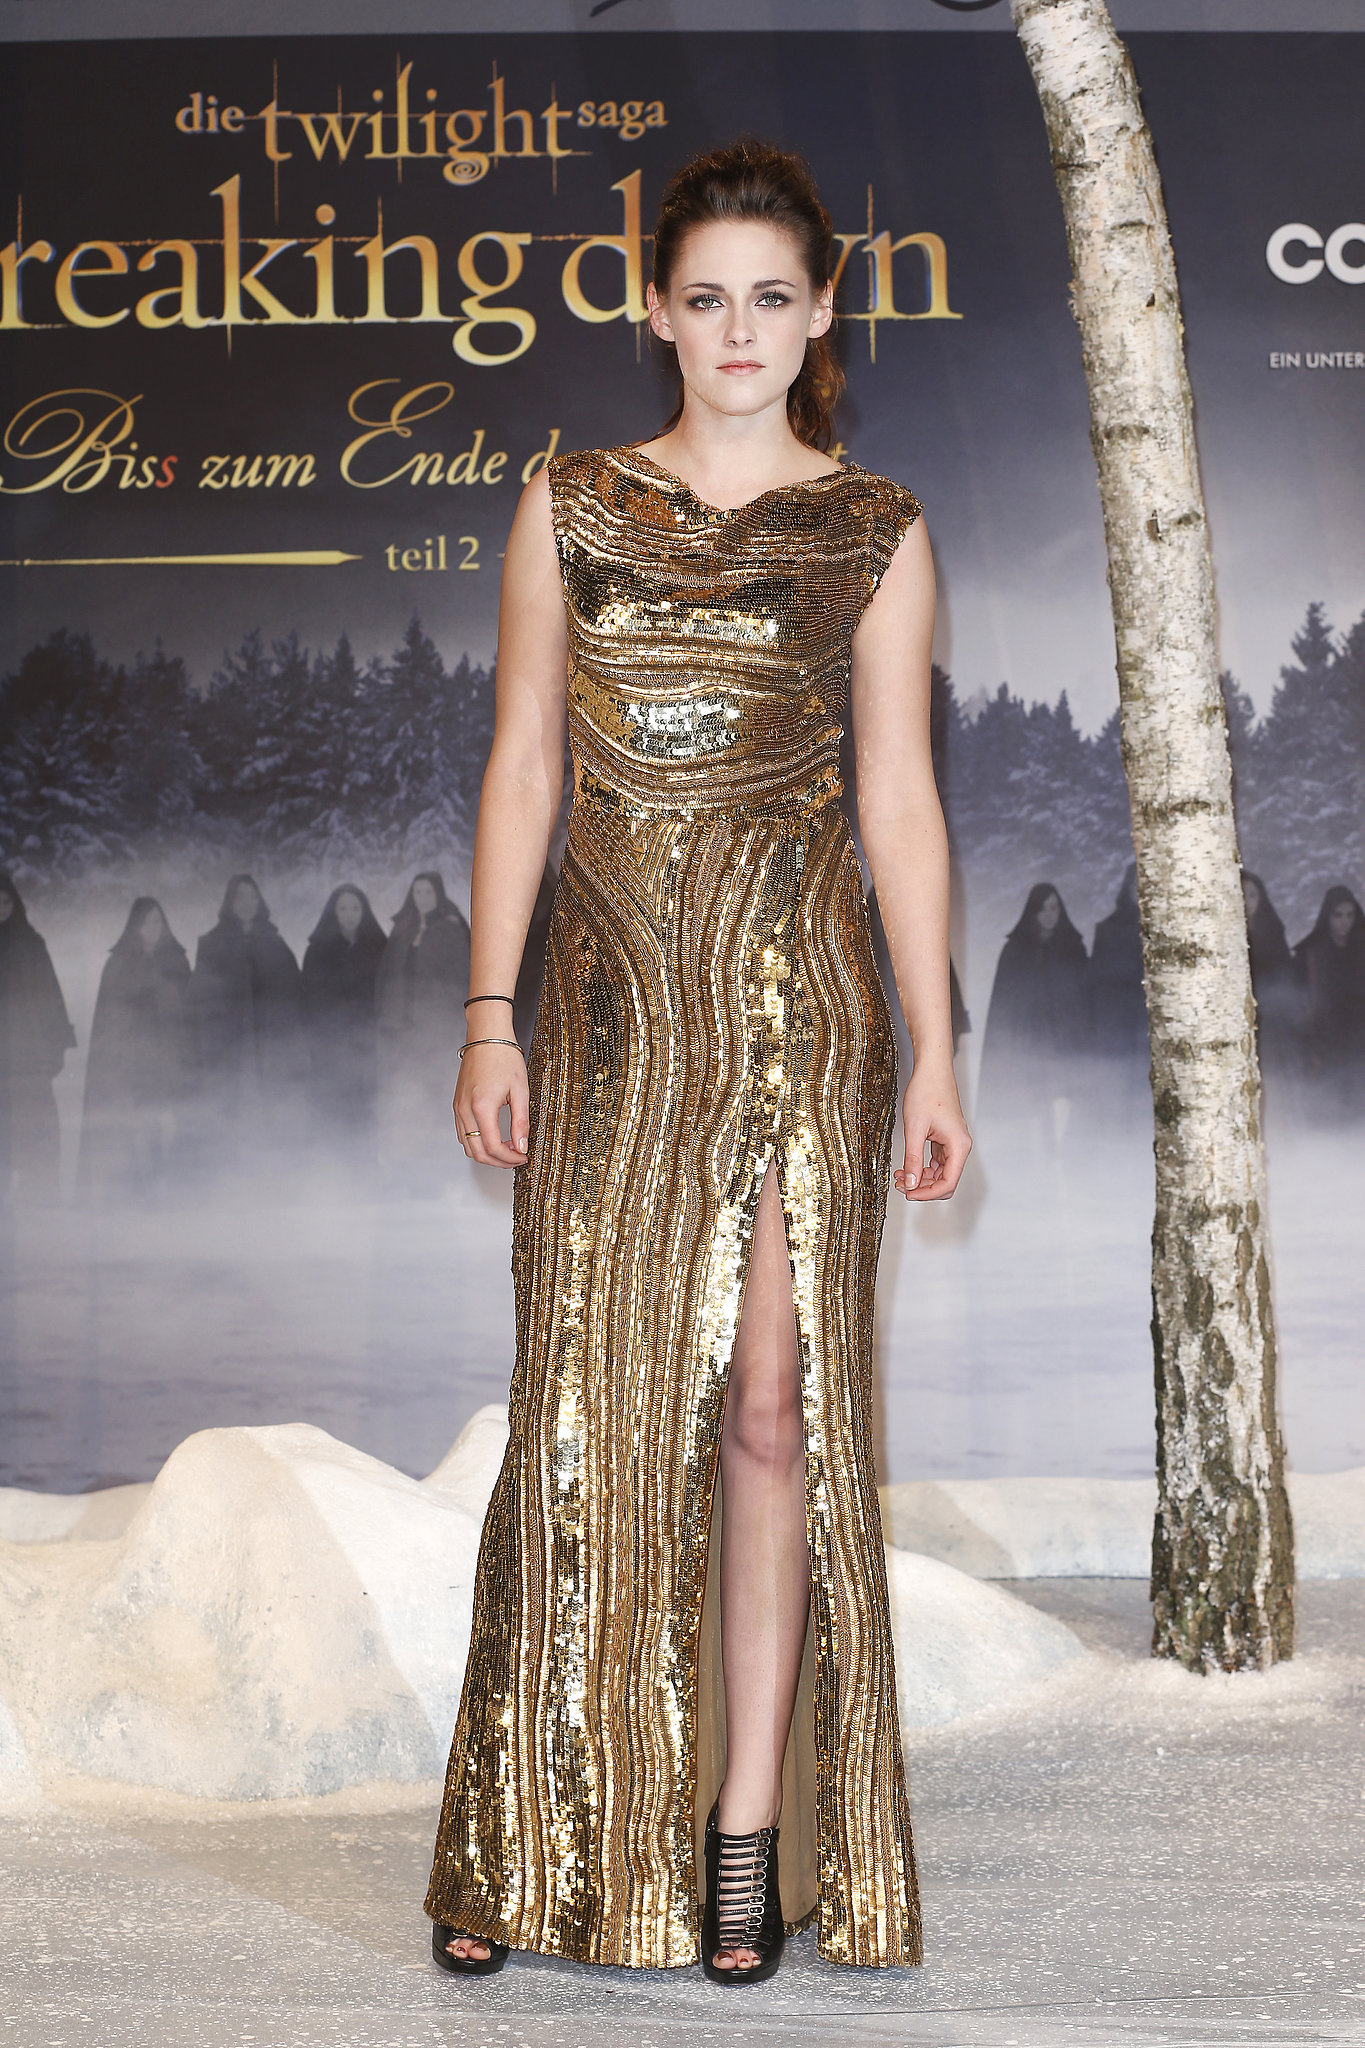 We couldn't get enough of the embellished gold Elie Saab gown that Stewart wore at the Germany premiere of Breaking Dawn Part 2 in November 2012. She showed off a pair of Christian Louboutin cage heels — and lots of leg — thanks to the gown's thigh-high slit.